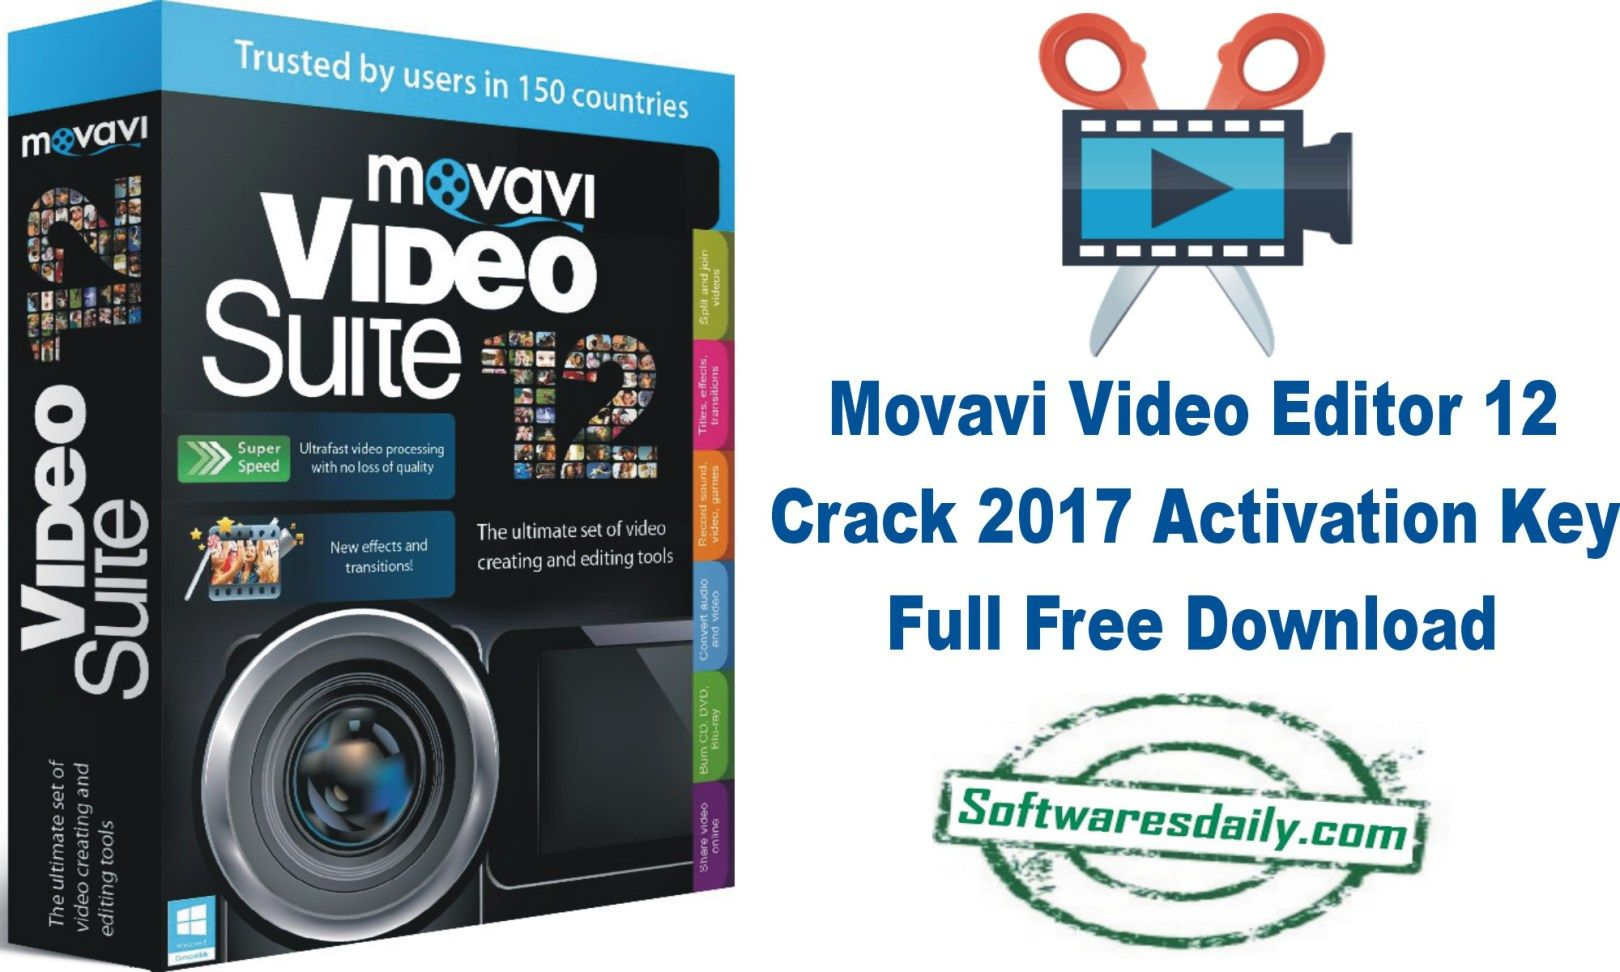 download activation key movavi video editor 12